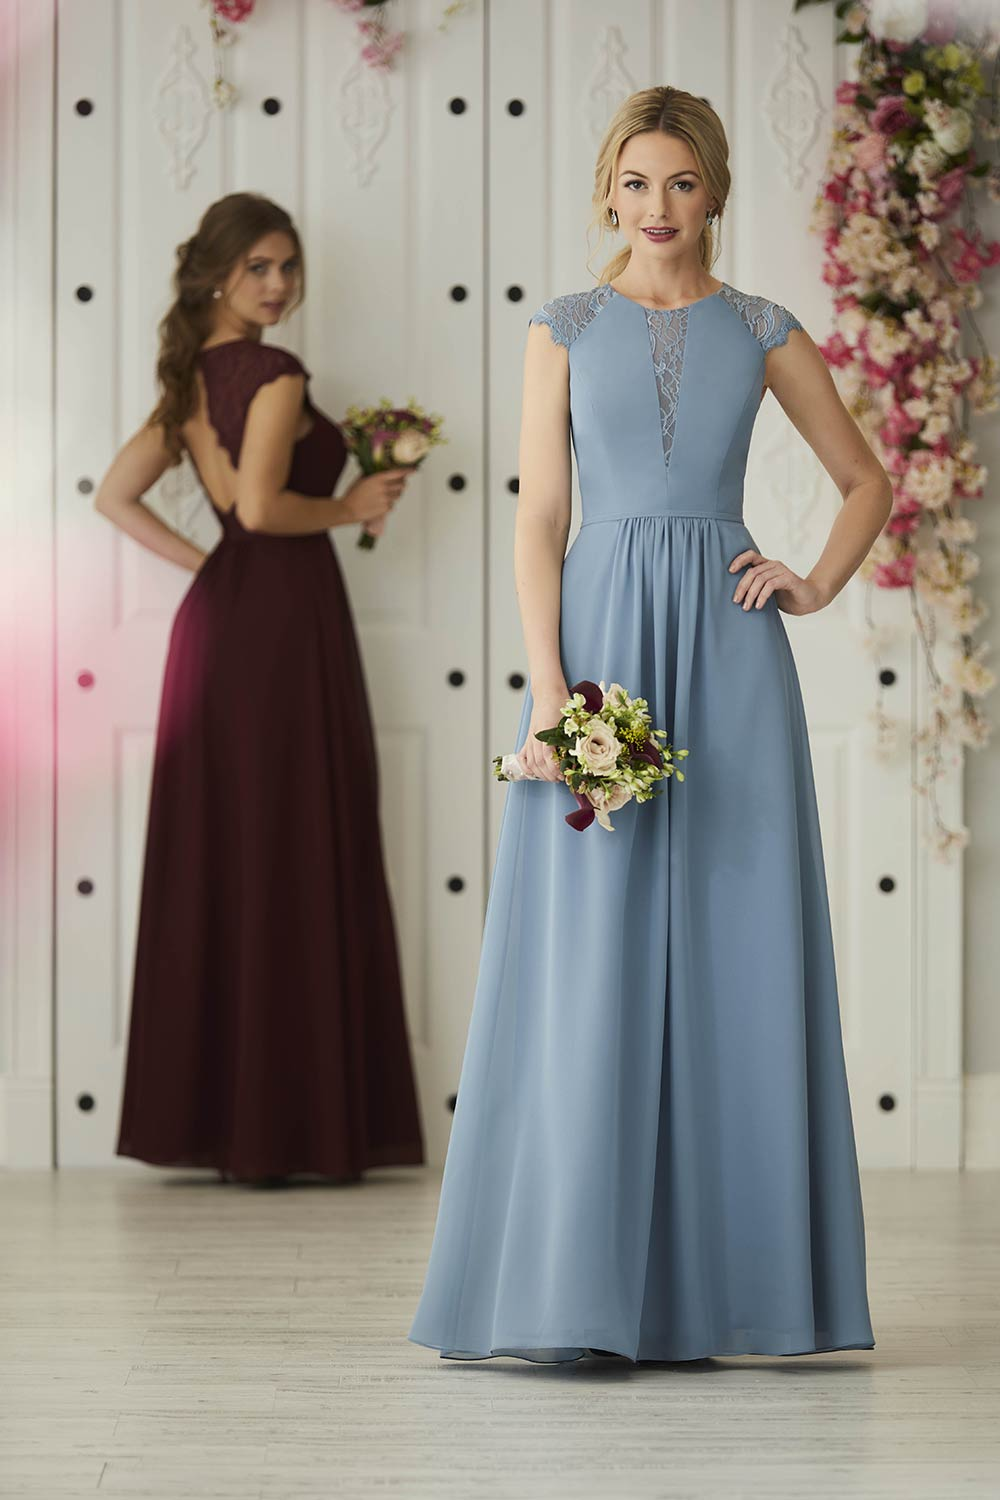 bridesmaid-dresses-jacquelin-bridals-canada-27308